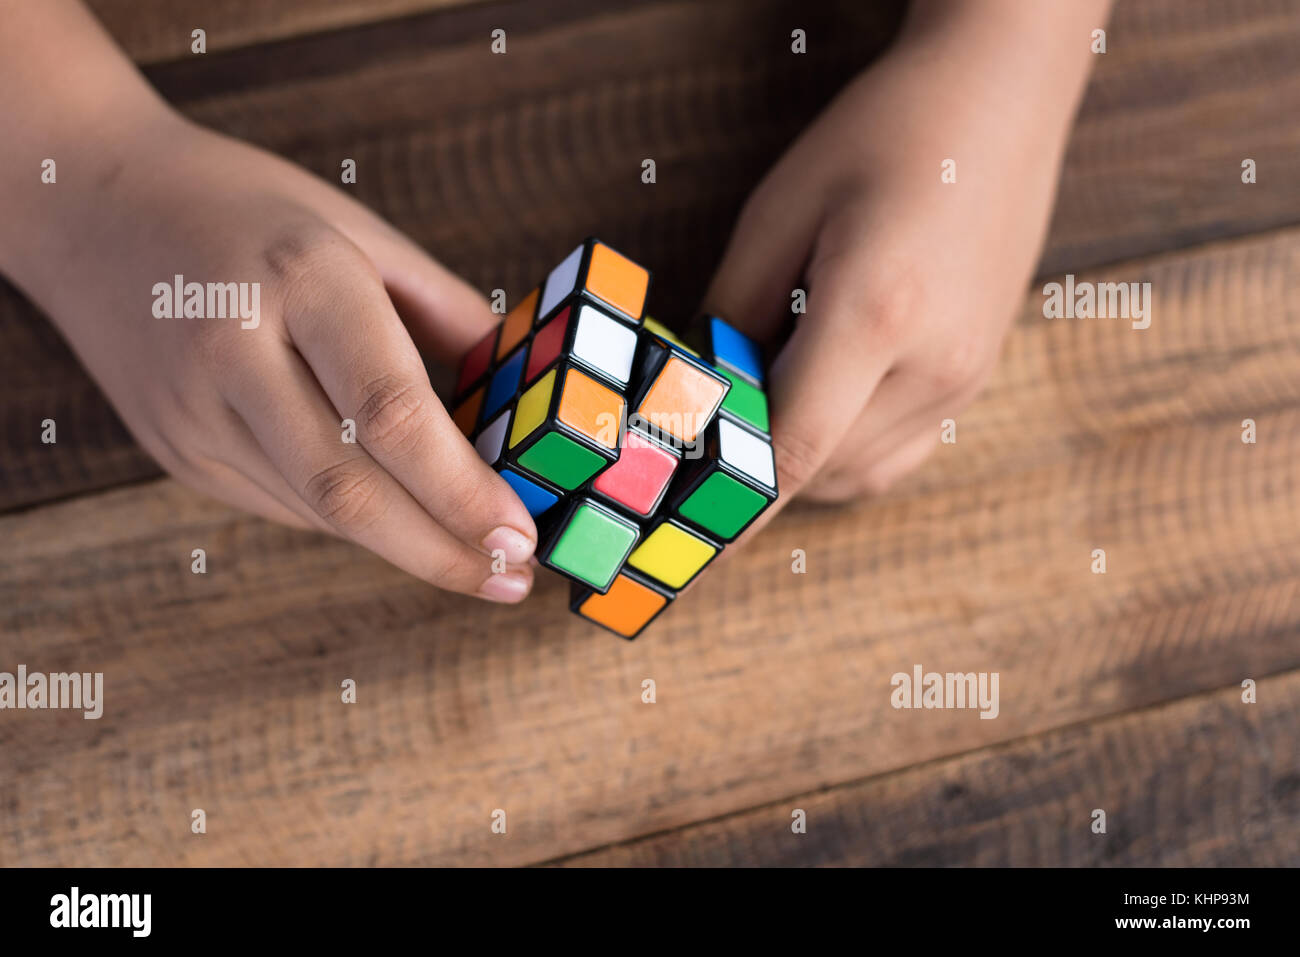 Asian boy playing with rubik's cube.boy.puzzle résoudre des casse-tête jouet Photo Stock